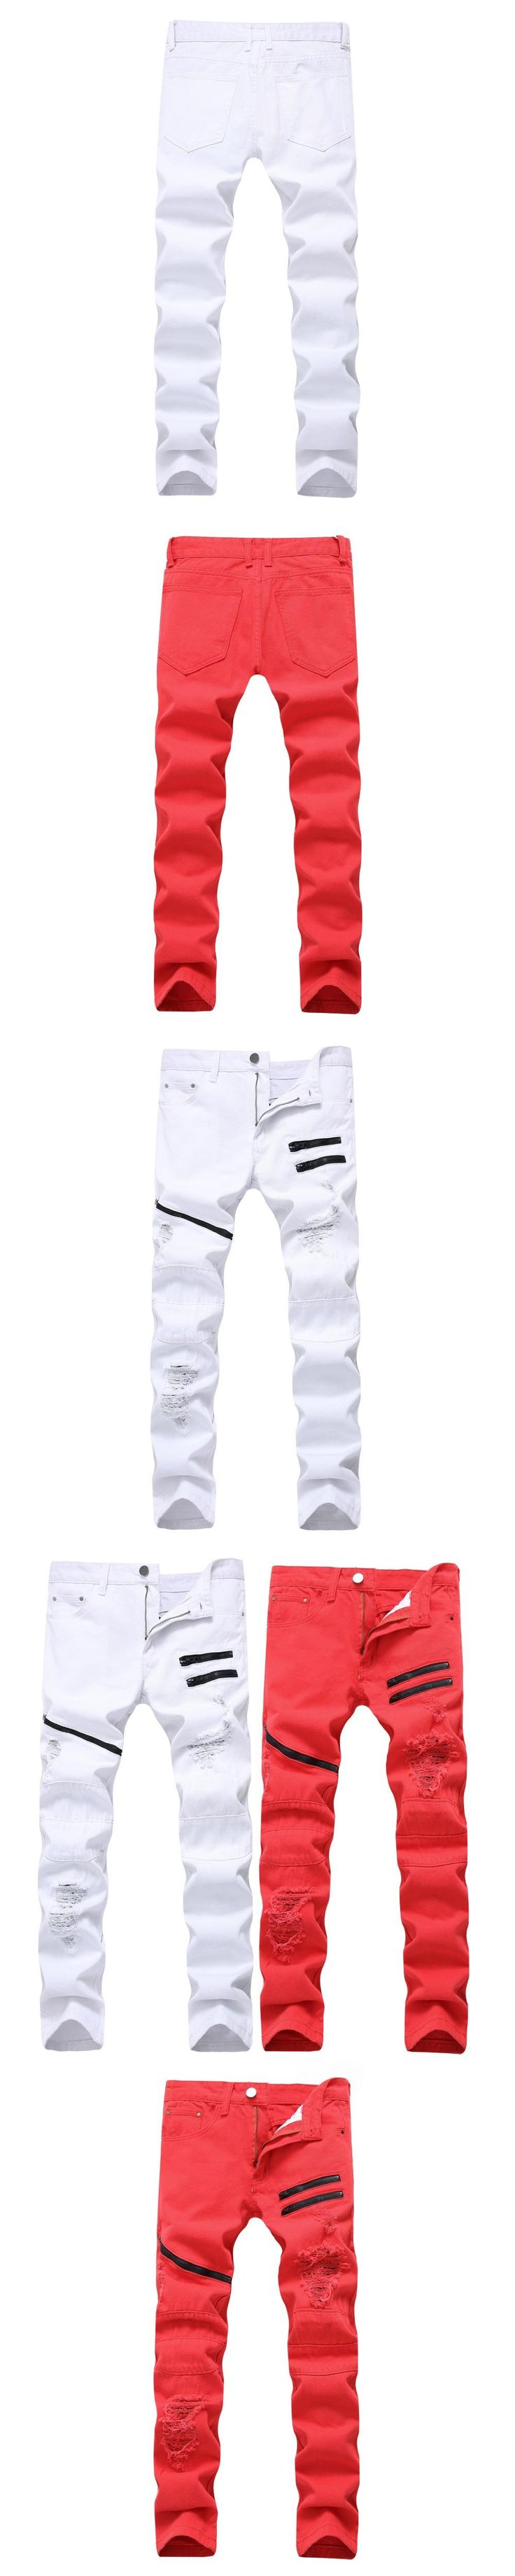 Men's Autumn Winter Hip Hop Zipper Pocket Pants Mens Casual Ripped Pants For Men Slim Fit Trousers Male White Red Plus Size 42